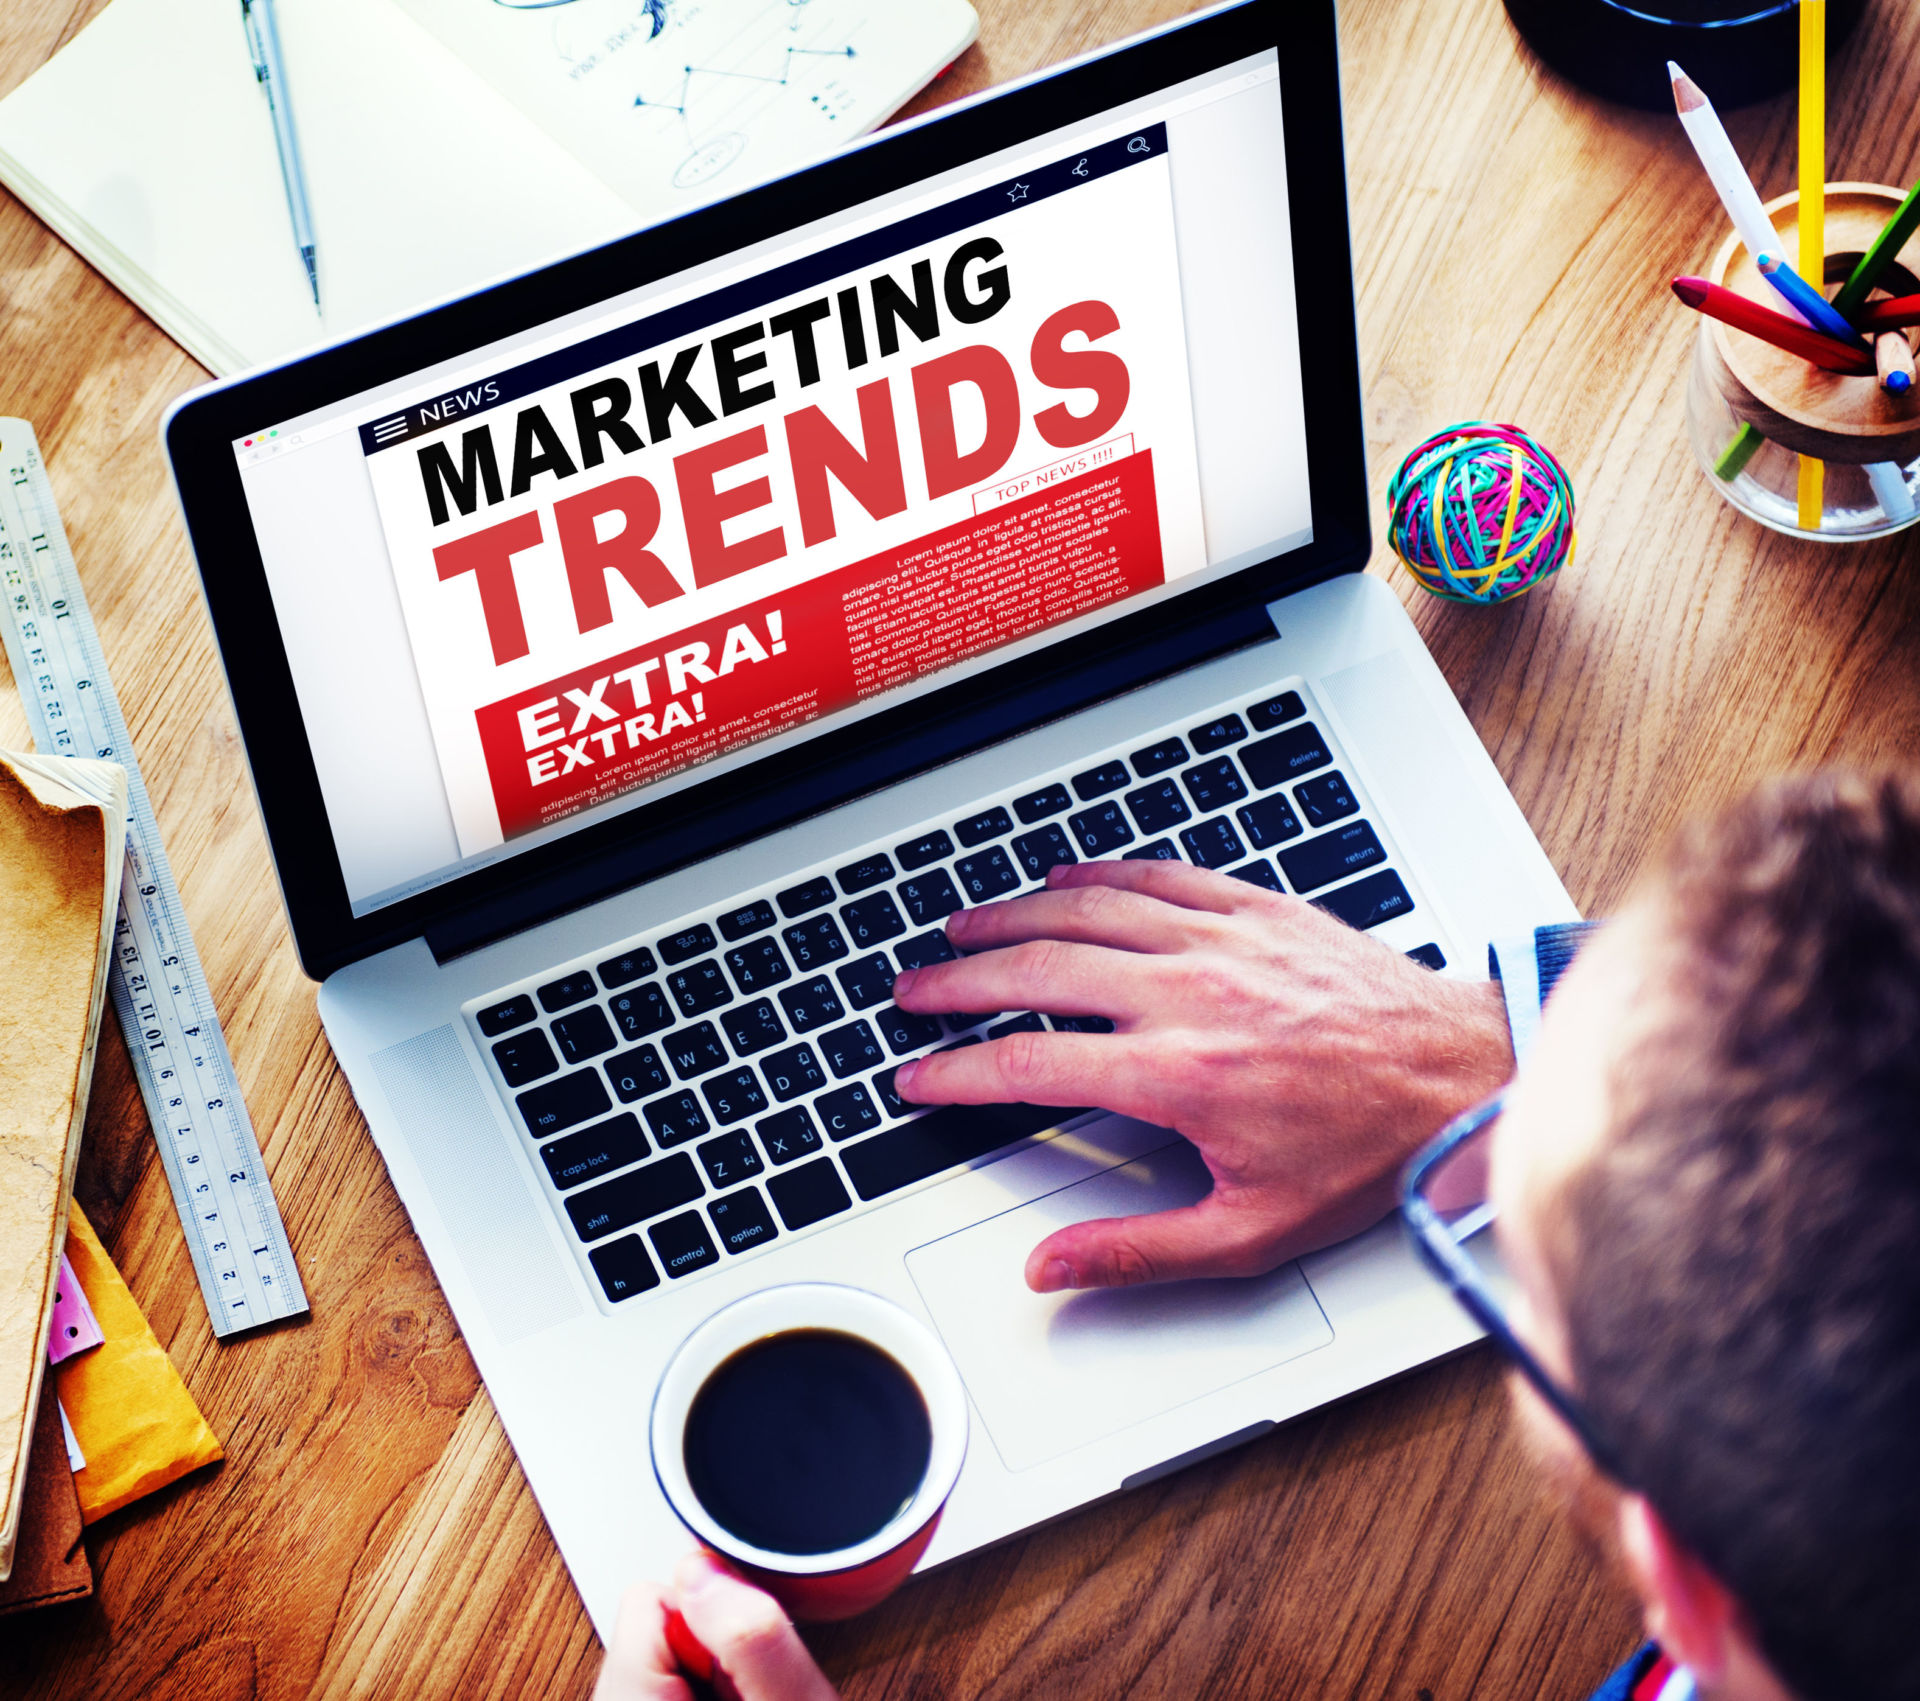 The Ultimate Guide to Marketing Trends in 2019